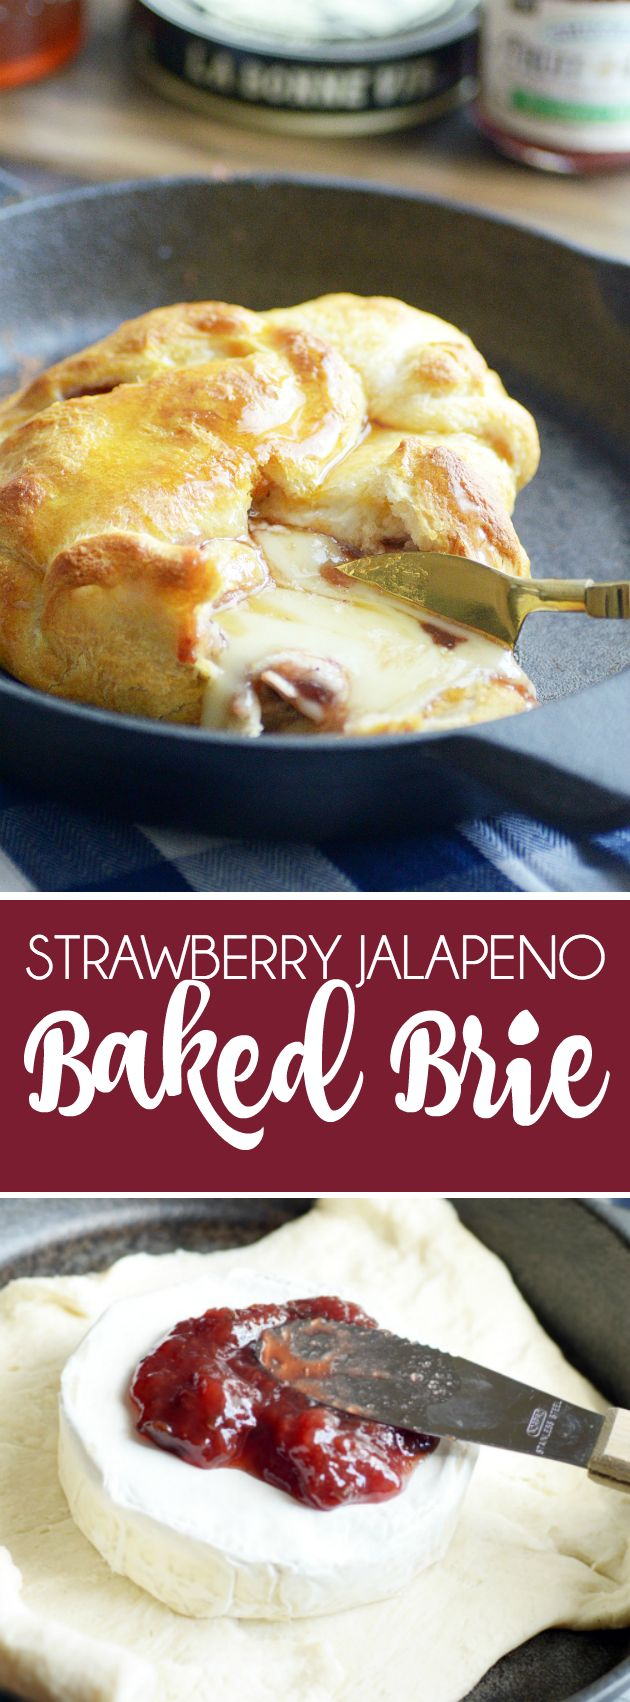 Buttery, flaky crescent roll dough stuffed with gooey brie cheese, strawberry jalapeño jam, with a drizzle of honey. A crowd winning baked brie!